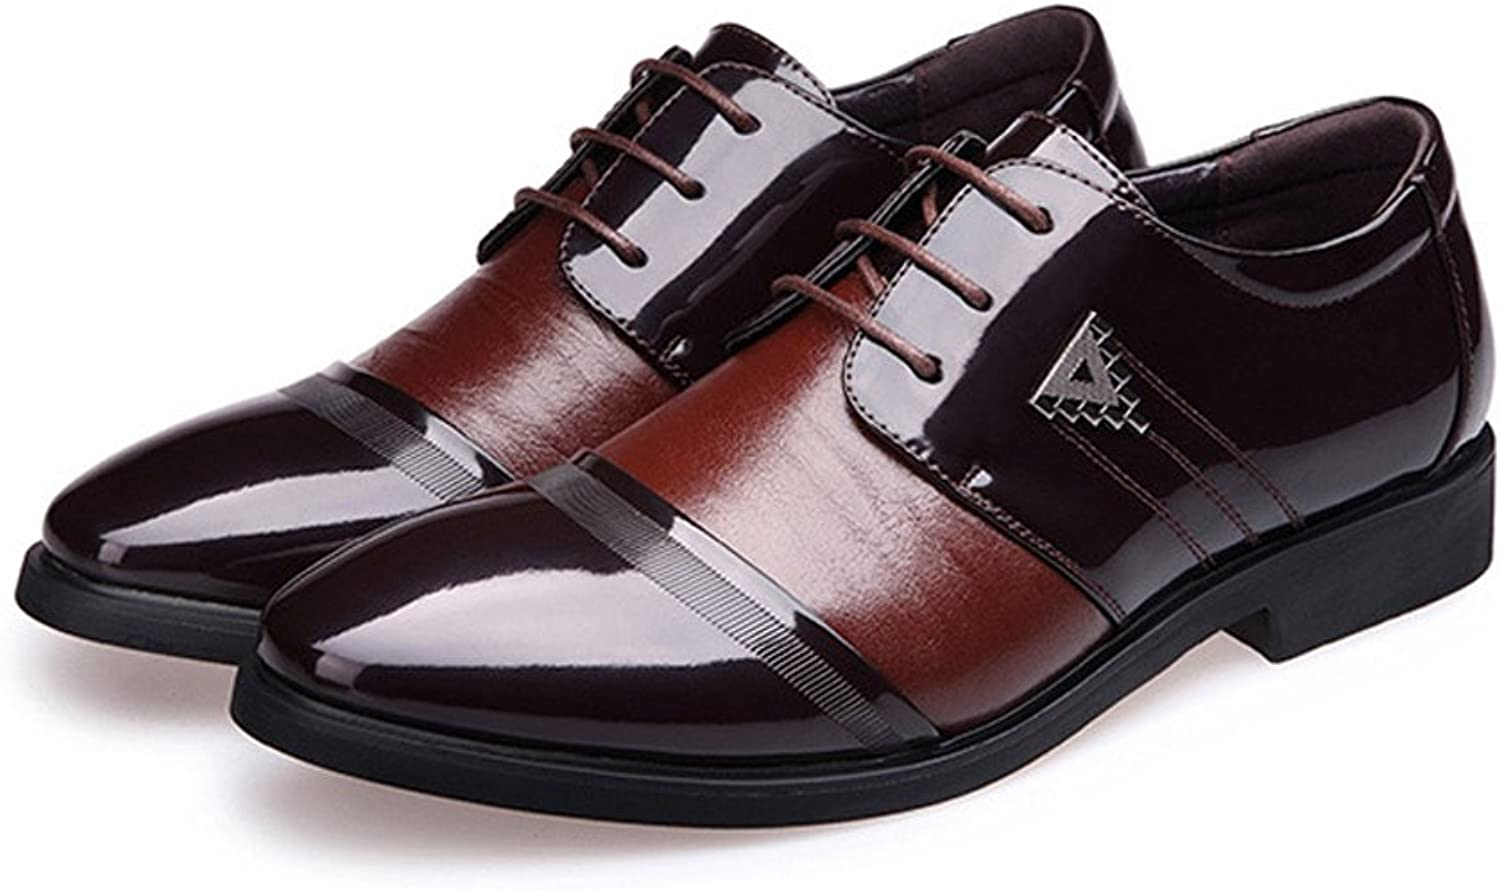 Men's Formal Business shoes Smooth PU Leather Splice Upper Lace Up Breathable Lined Oxfords (color   Brown, Size   CN24)